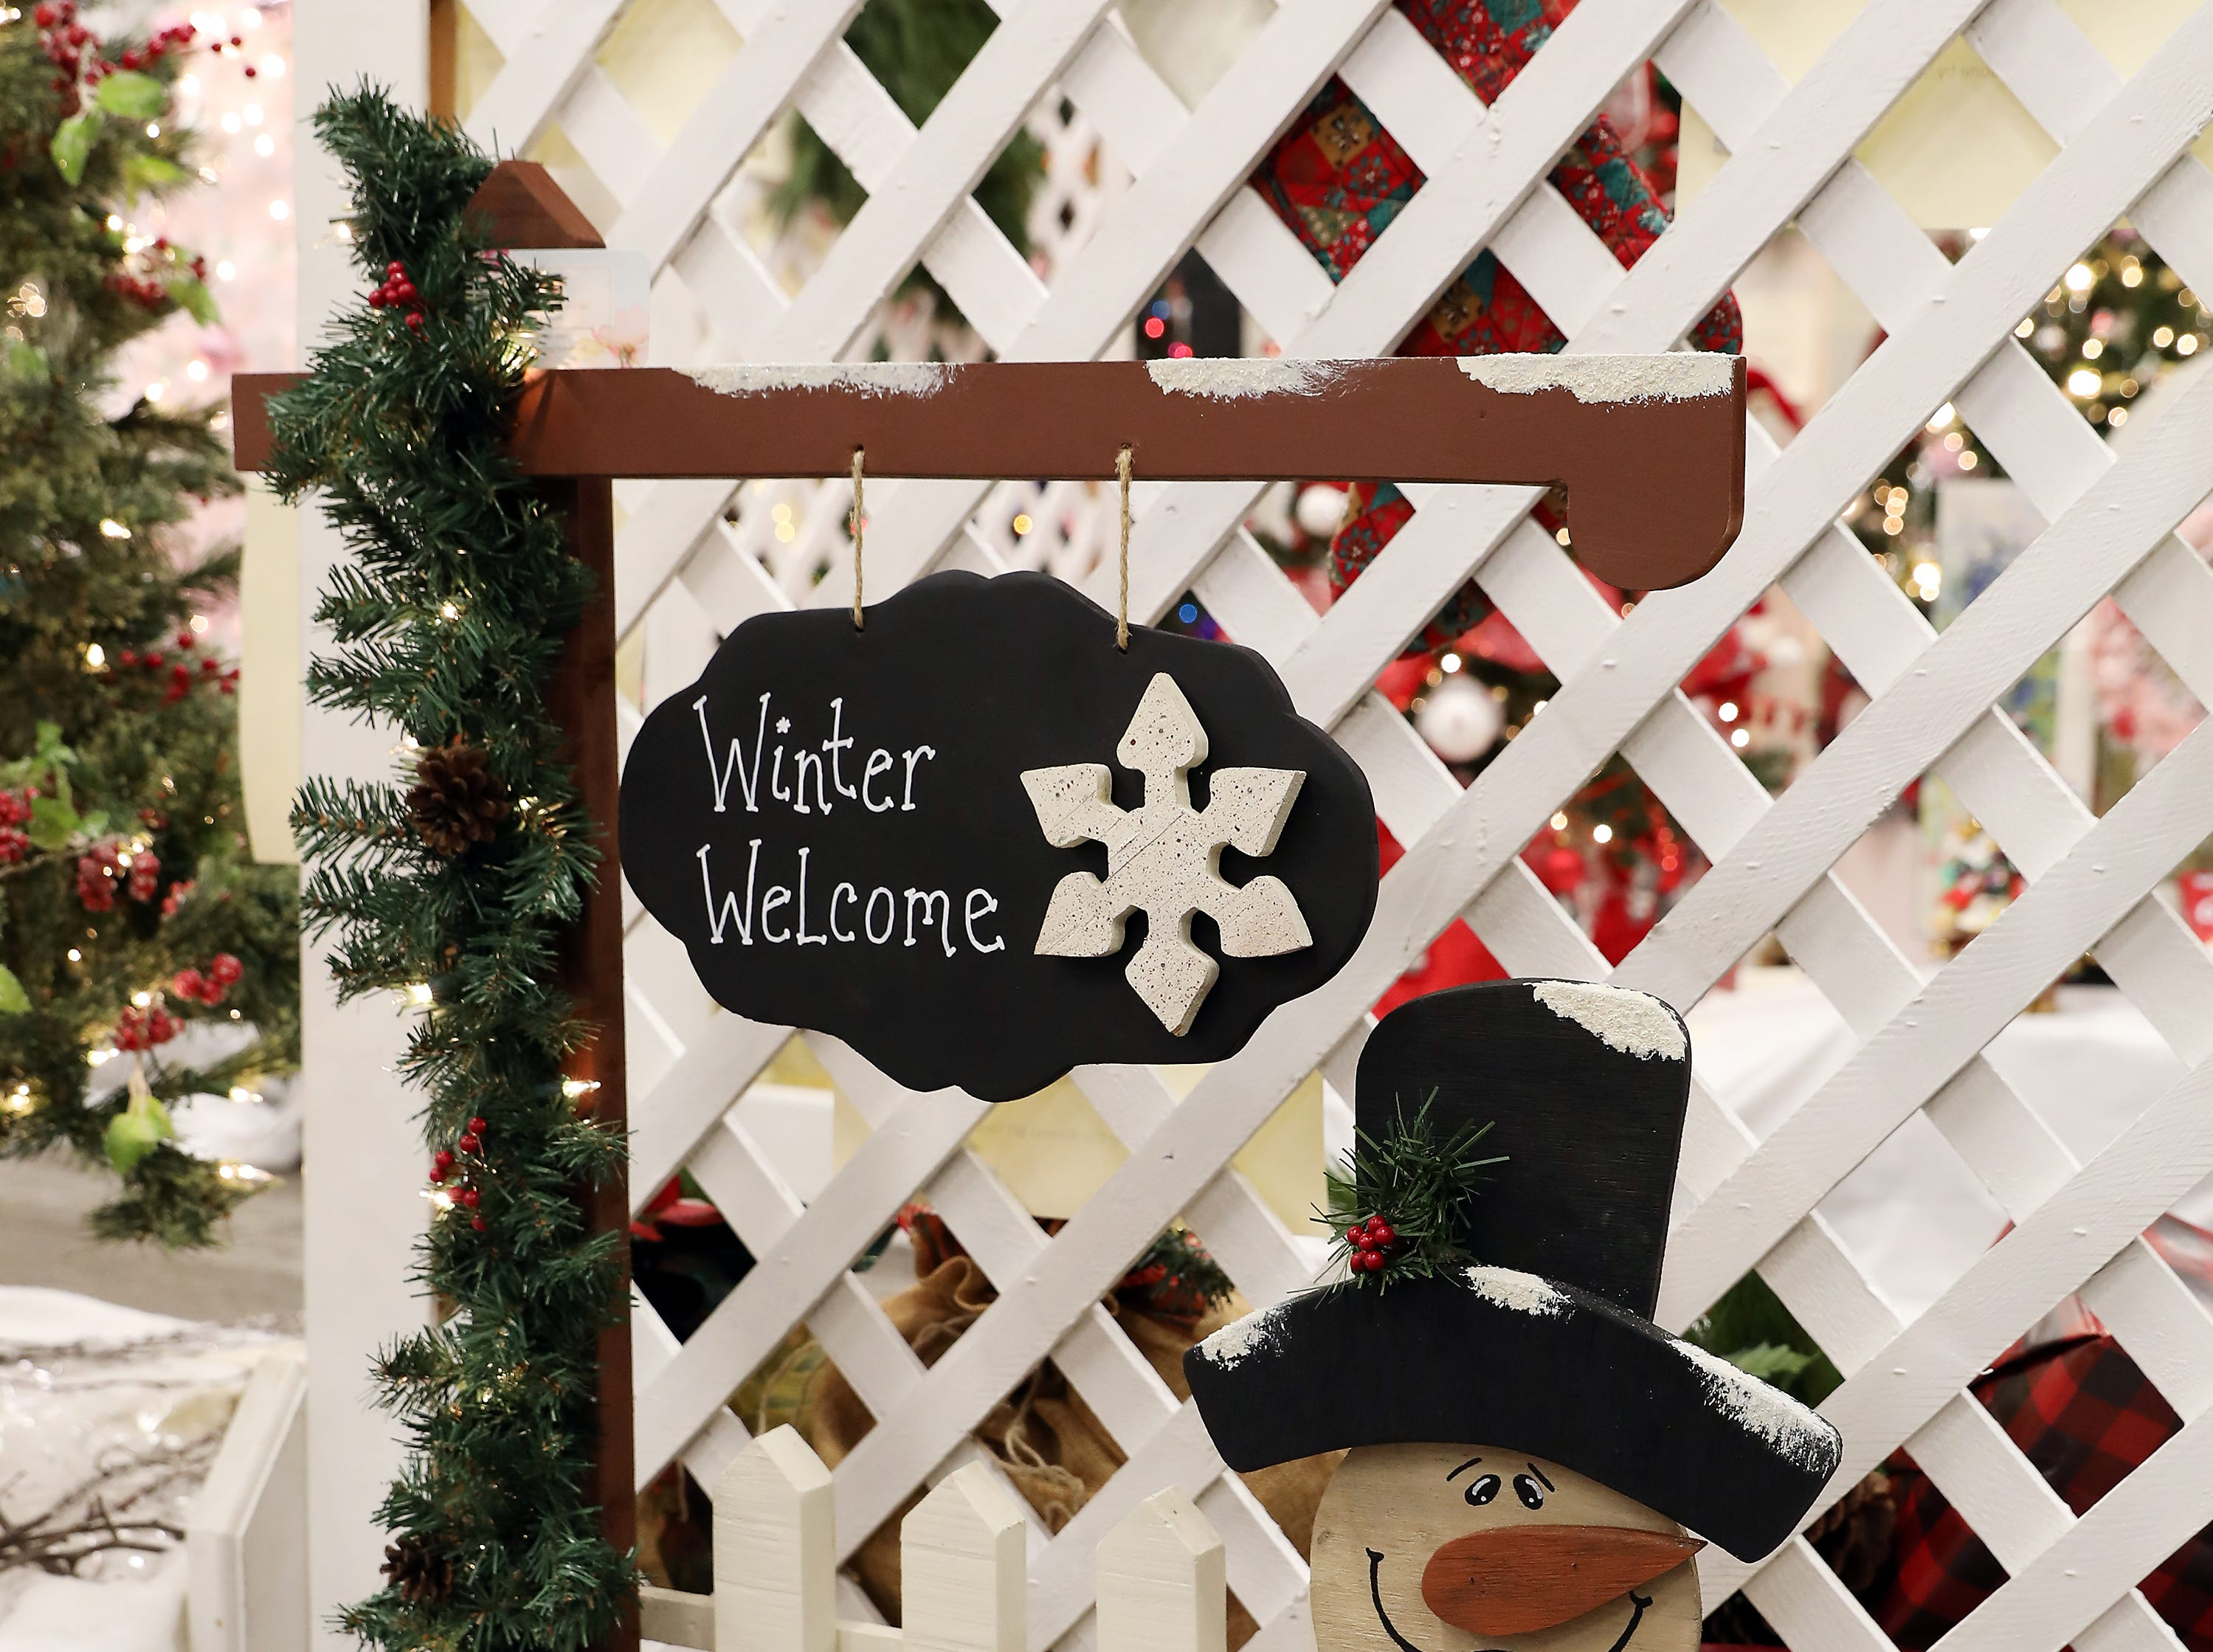 89	12:45 PM	Watch Me Grow Studio	Other	Welcome Winter!	Wooden snowman with decorative illuminated garland and picket fence. 		3D ultrasound, heartbeat session and printed pictures.  Courtesy of Watch Me Grow Studio - celebrating 5 years in business.